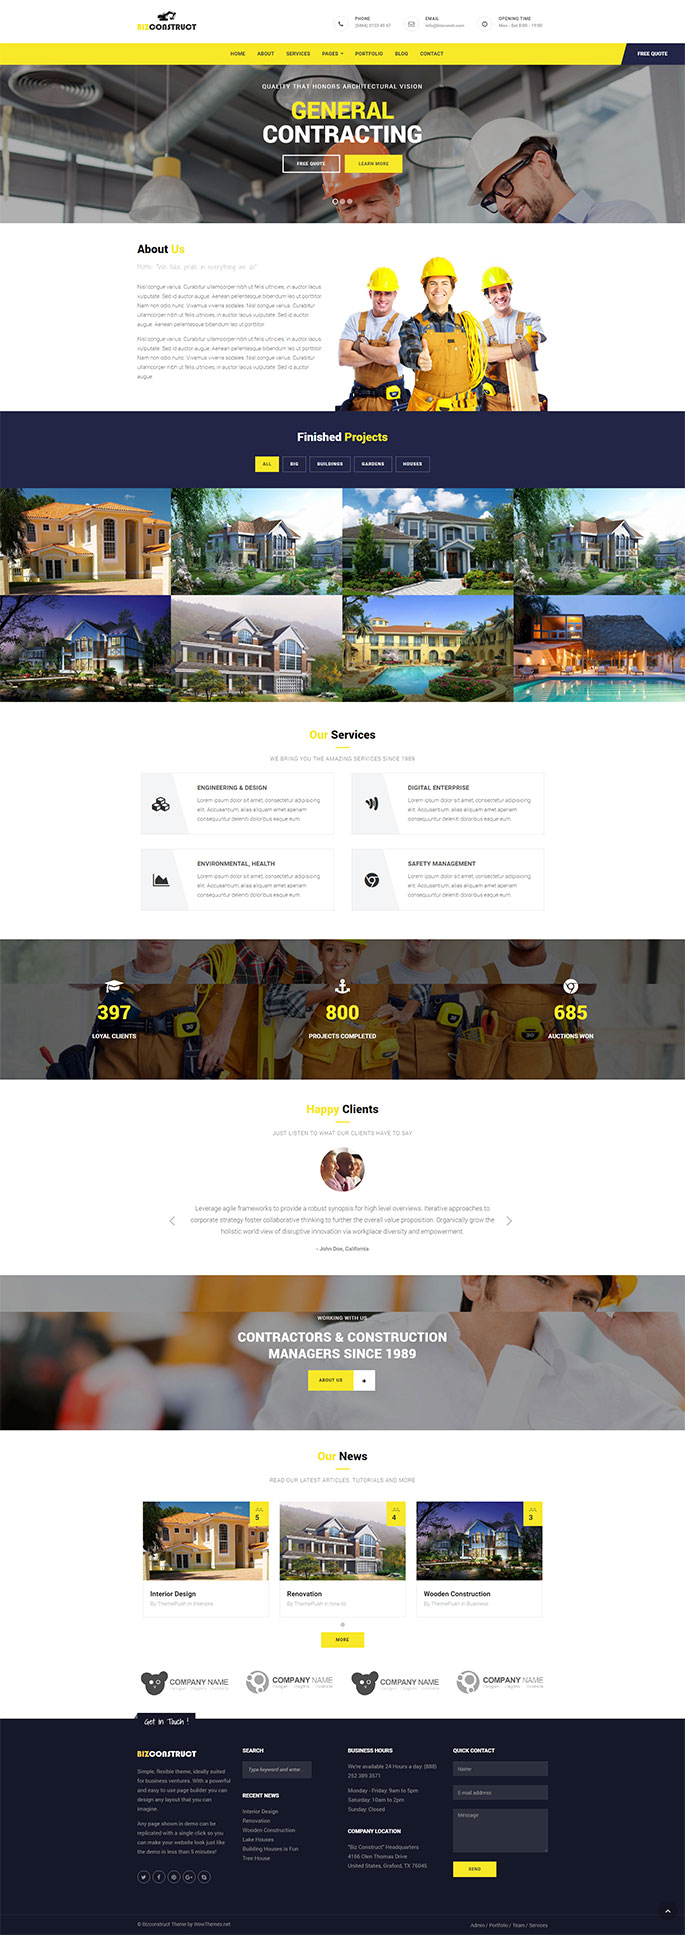 BizConstruct theme for WordPress